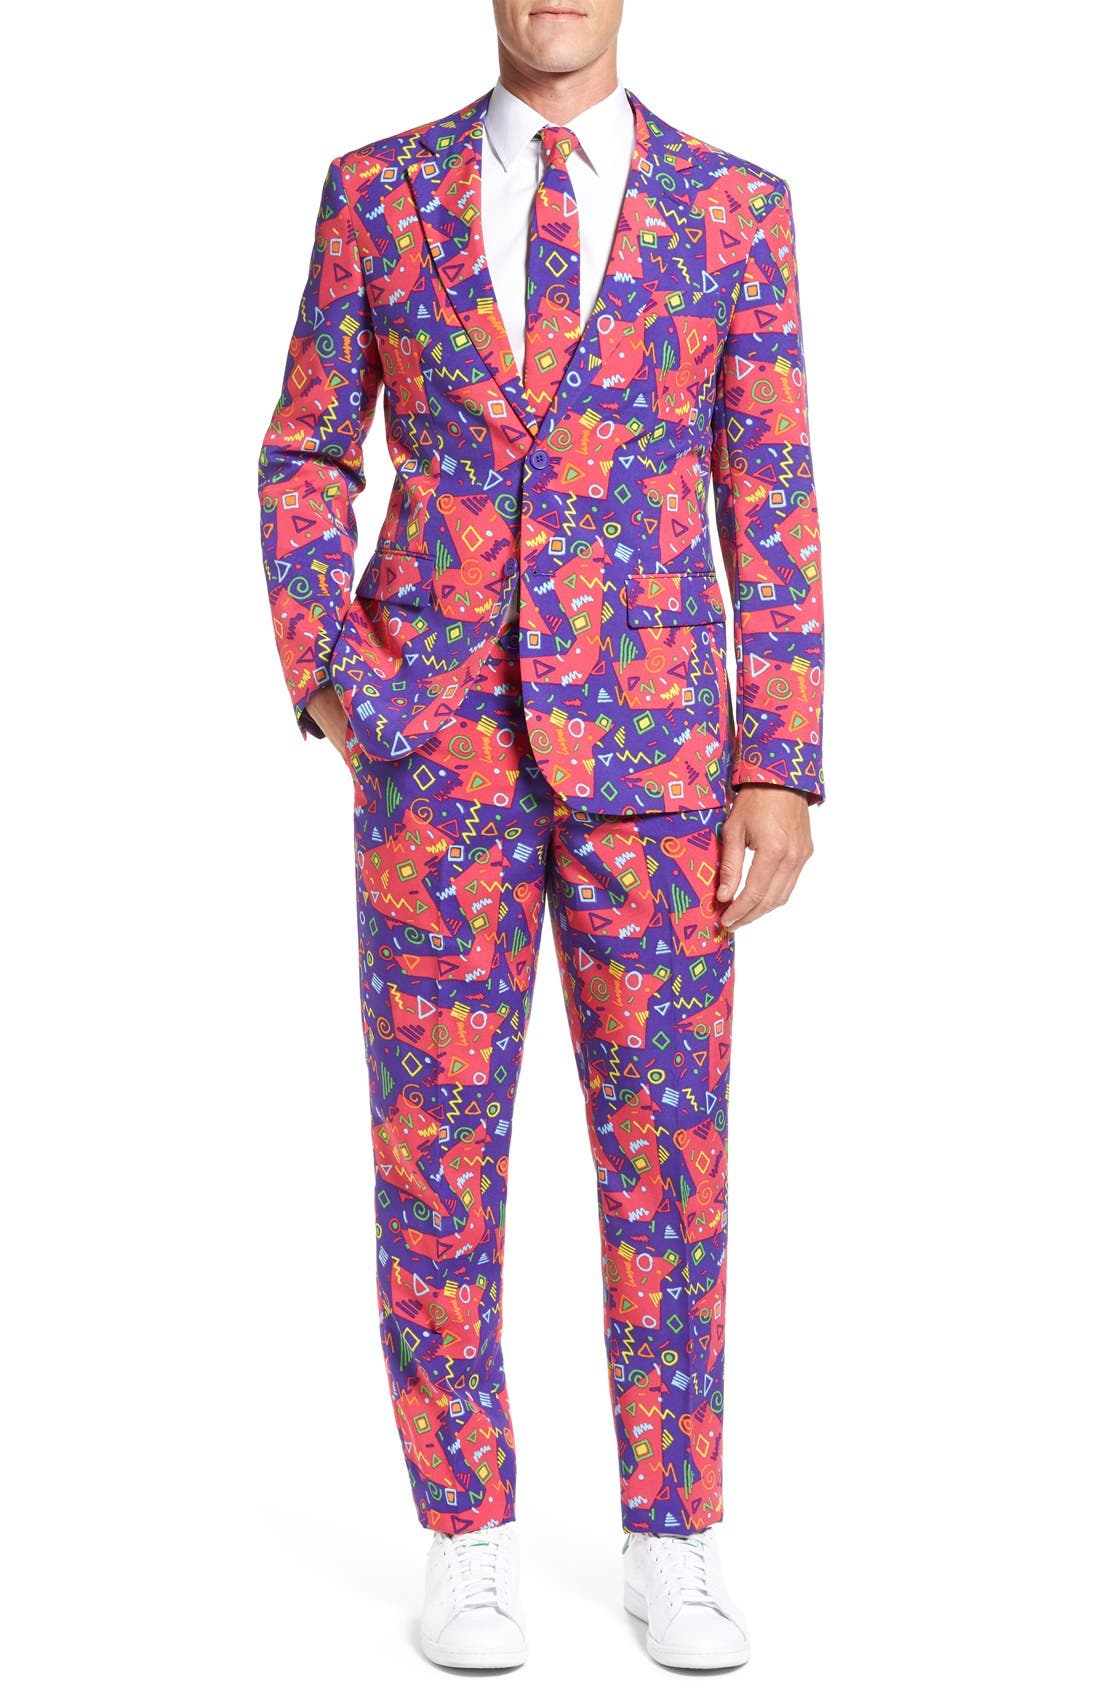 'The Fresh Prince' Trim Fit Two-Piece Suit with Tie,                         Main,                         color,